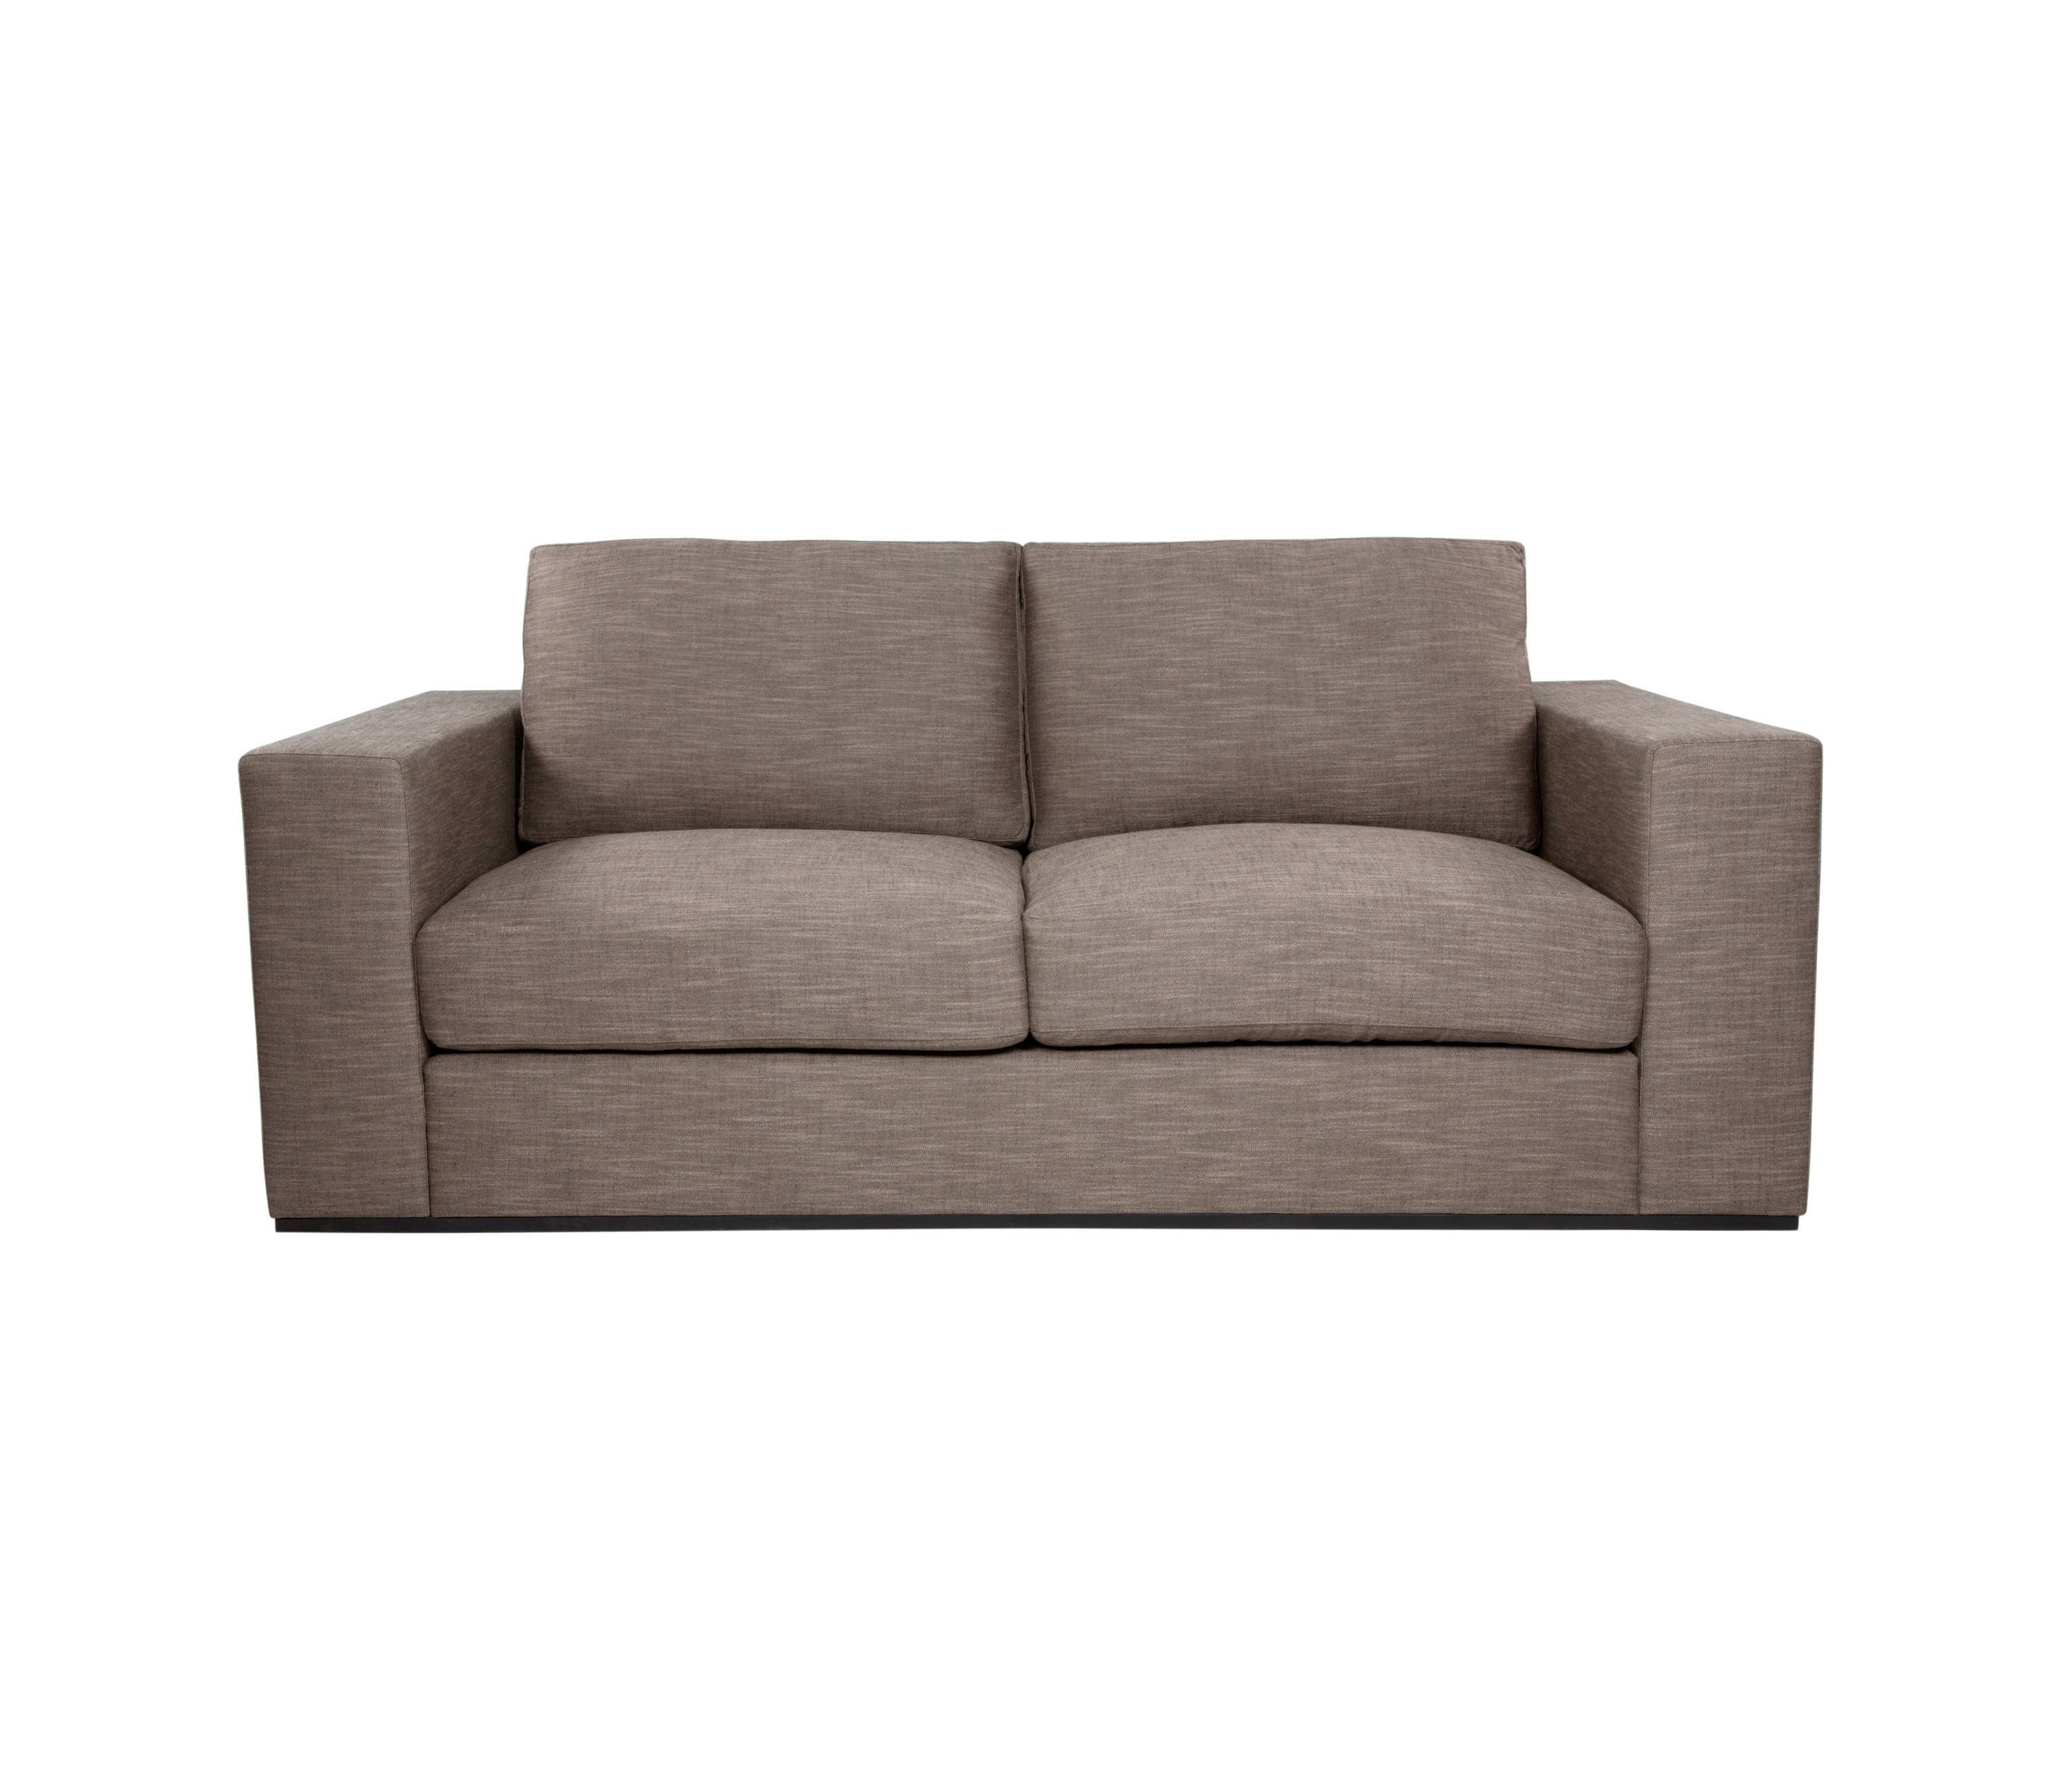 30 Best Collection of Windsor Sofas